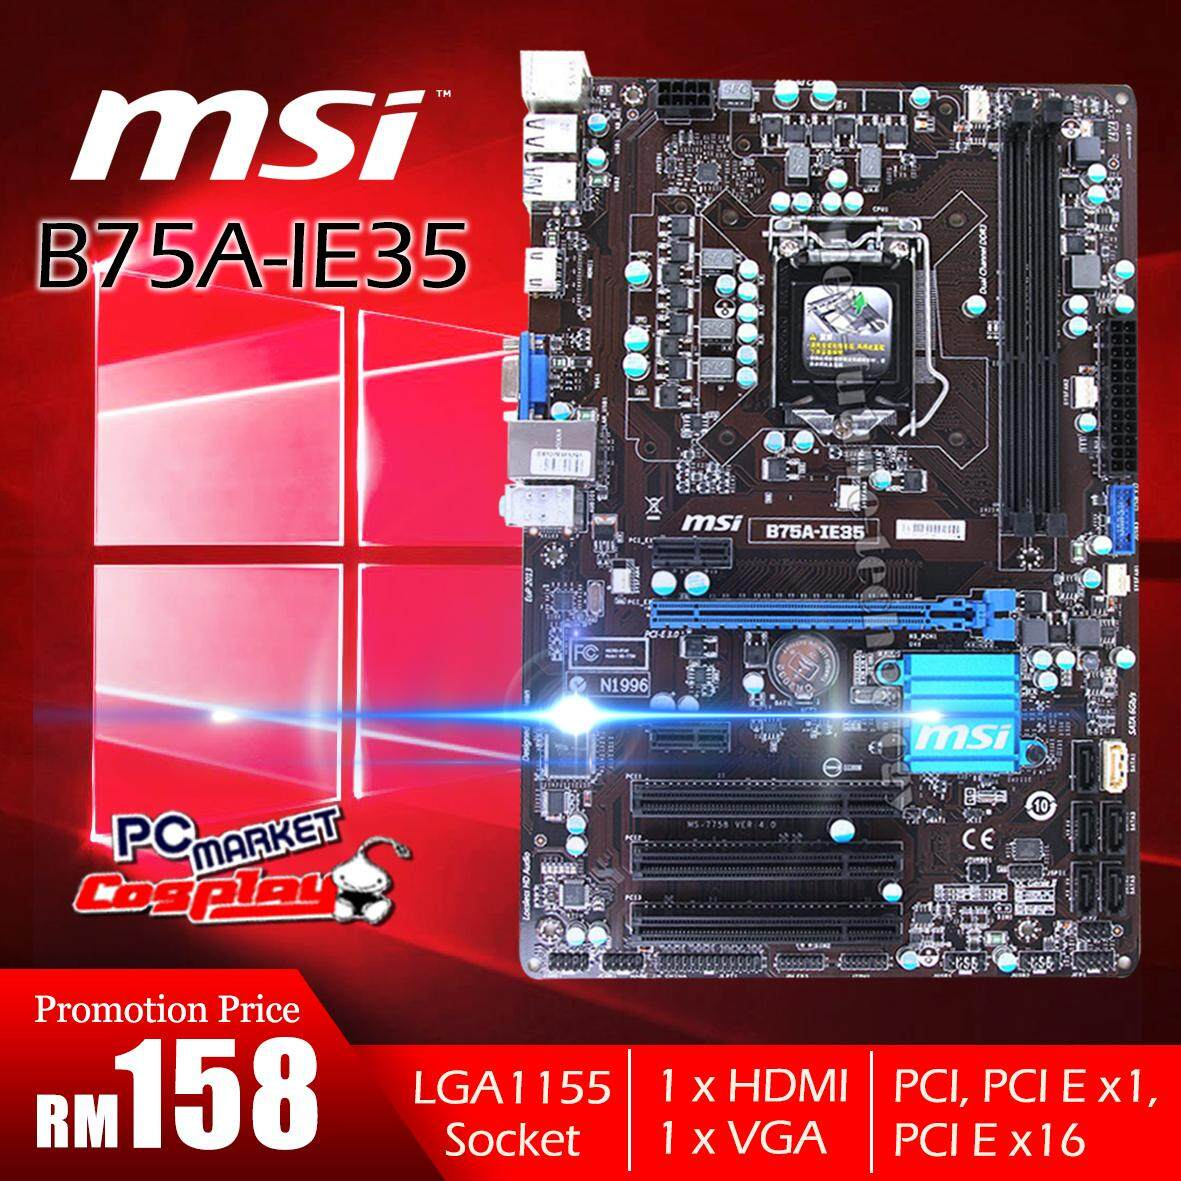 Fitur P55 Motherboard D1156pin Solid State Power Supply Support For H61 Suport I3 I5 I7 Lga 1155 Msi B75a Ie35 Ddr3 Cpu B75 Desktop Intel